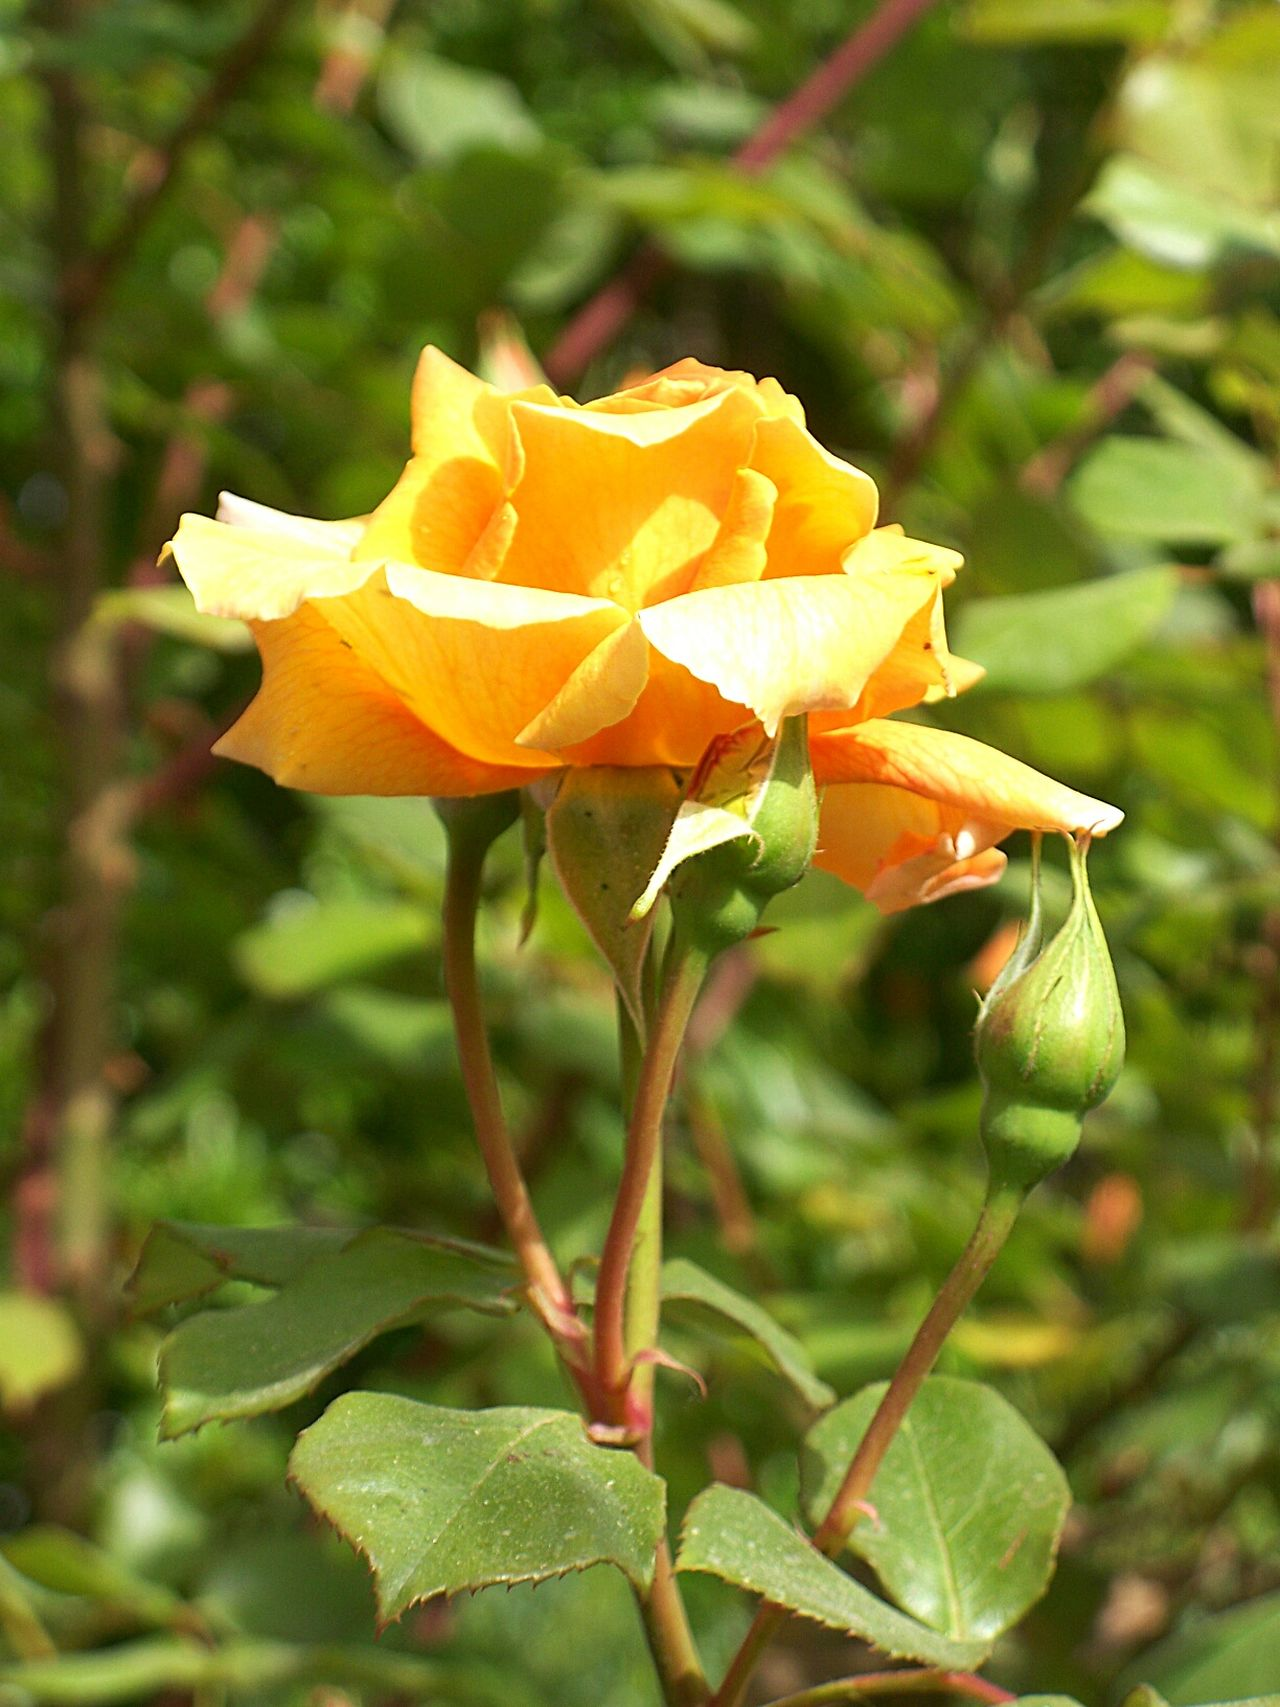 Flower Yellow Nature Beauty In Nature Roses🌹 Yellow Flowers Yellow Rose Rose♥ Rosé Green Color Greenleaves Green Leafes